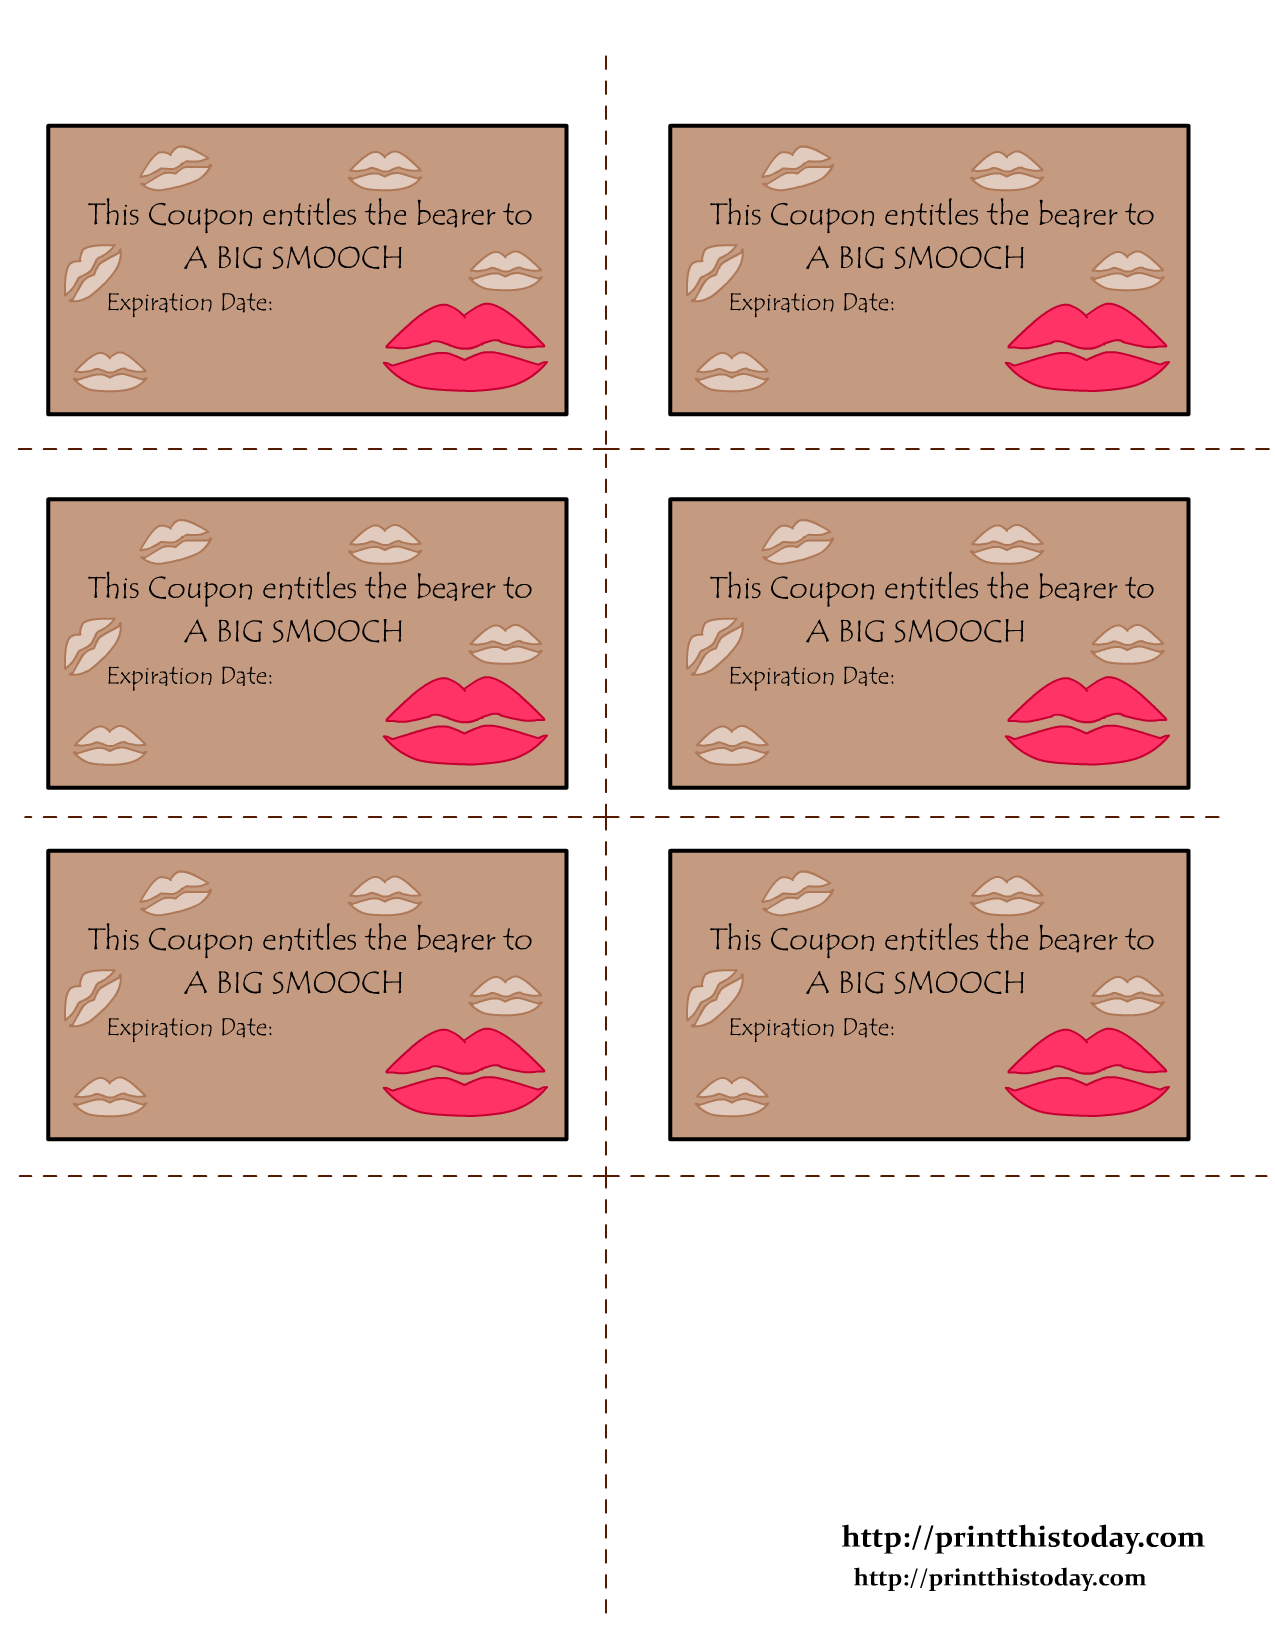 Free Printable Valentine Coupons Love Coupons Coupon Template Valentines Printables Free